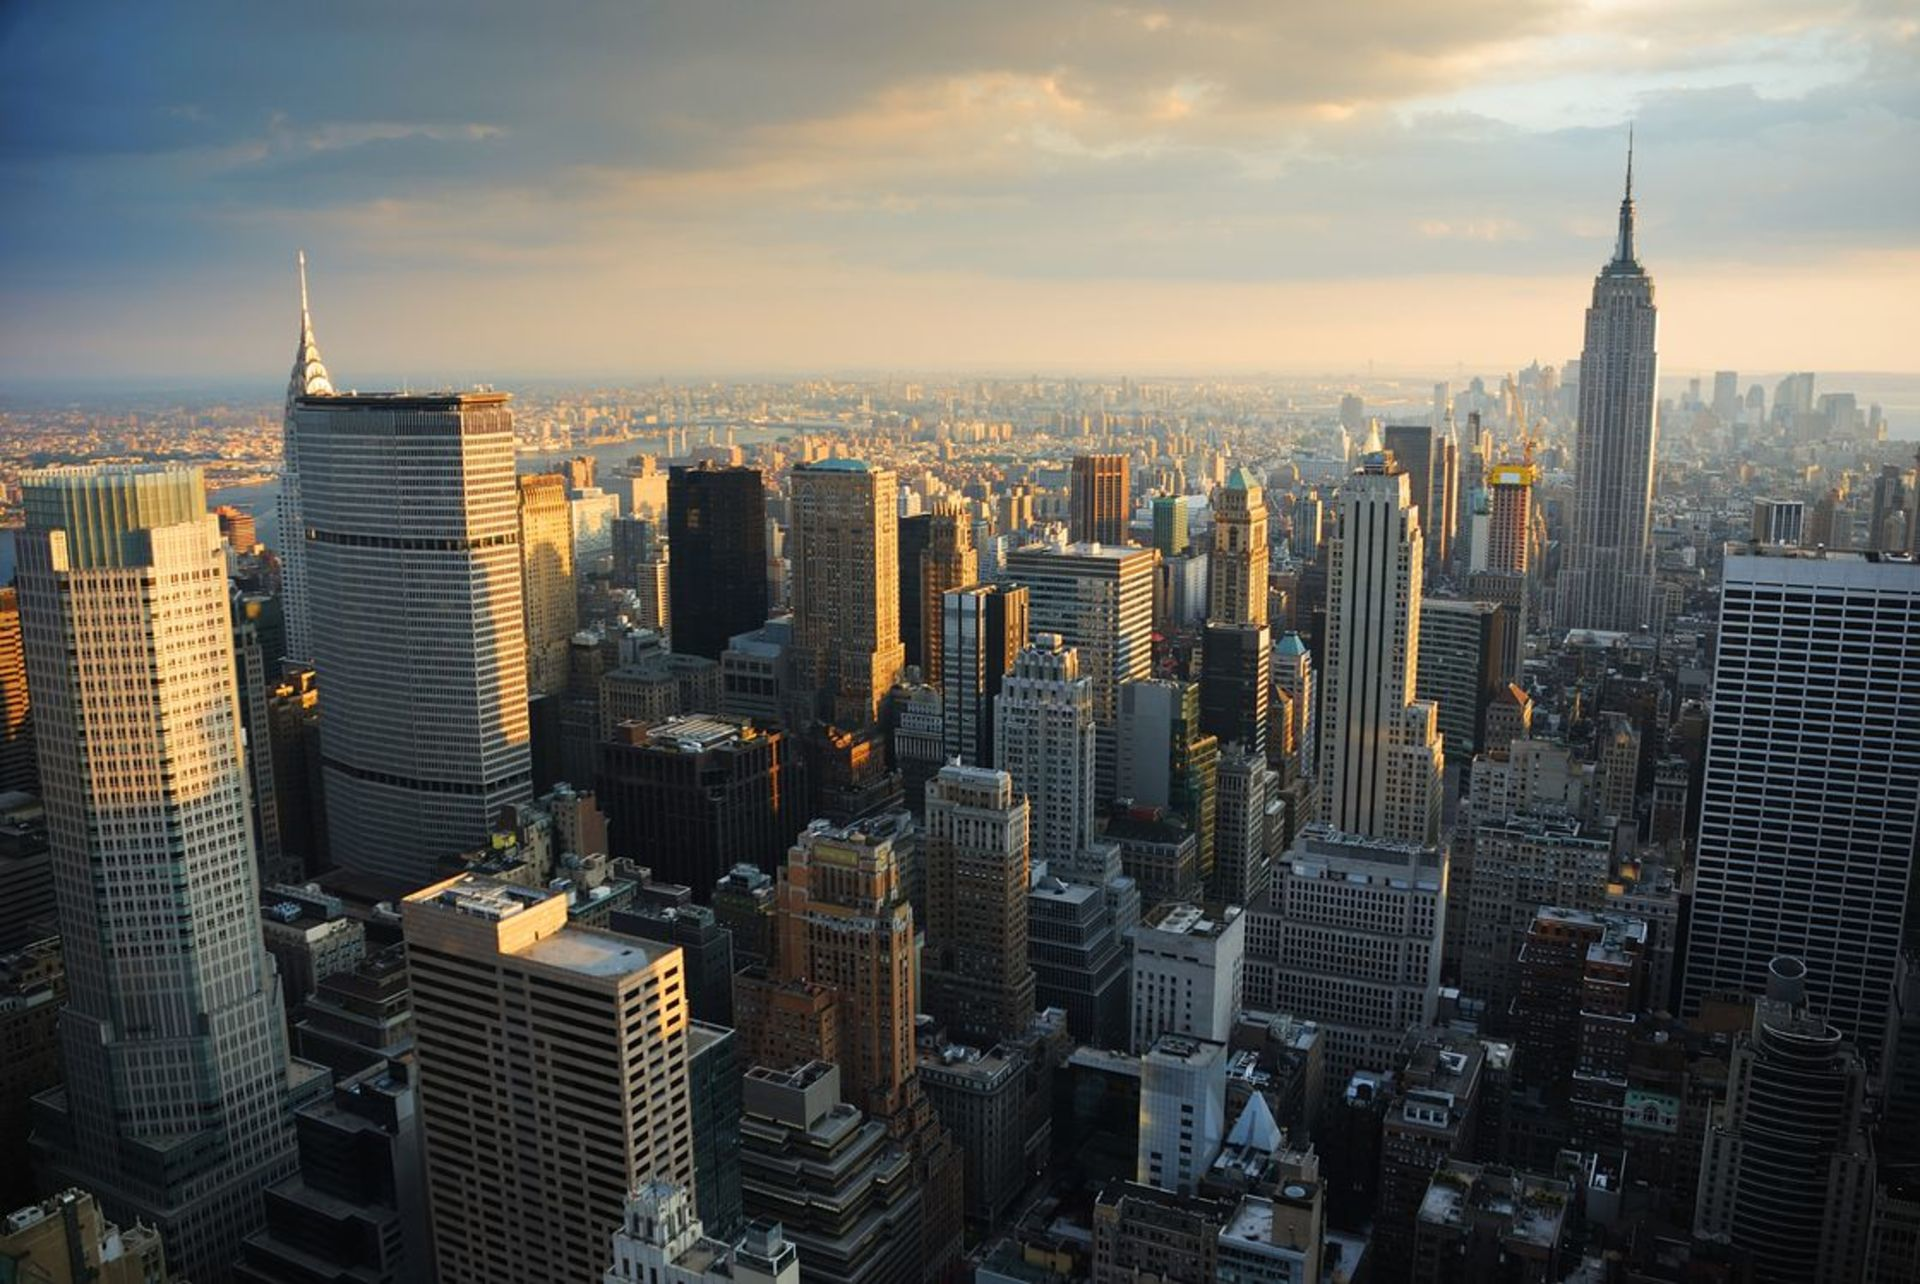 New York City's most iconic buildings, mapped